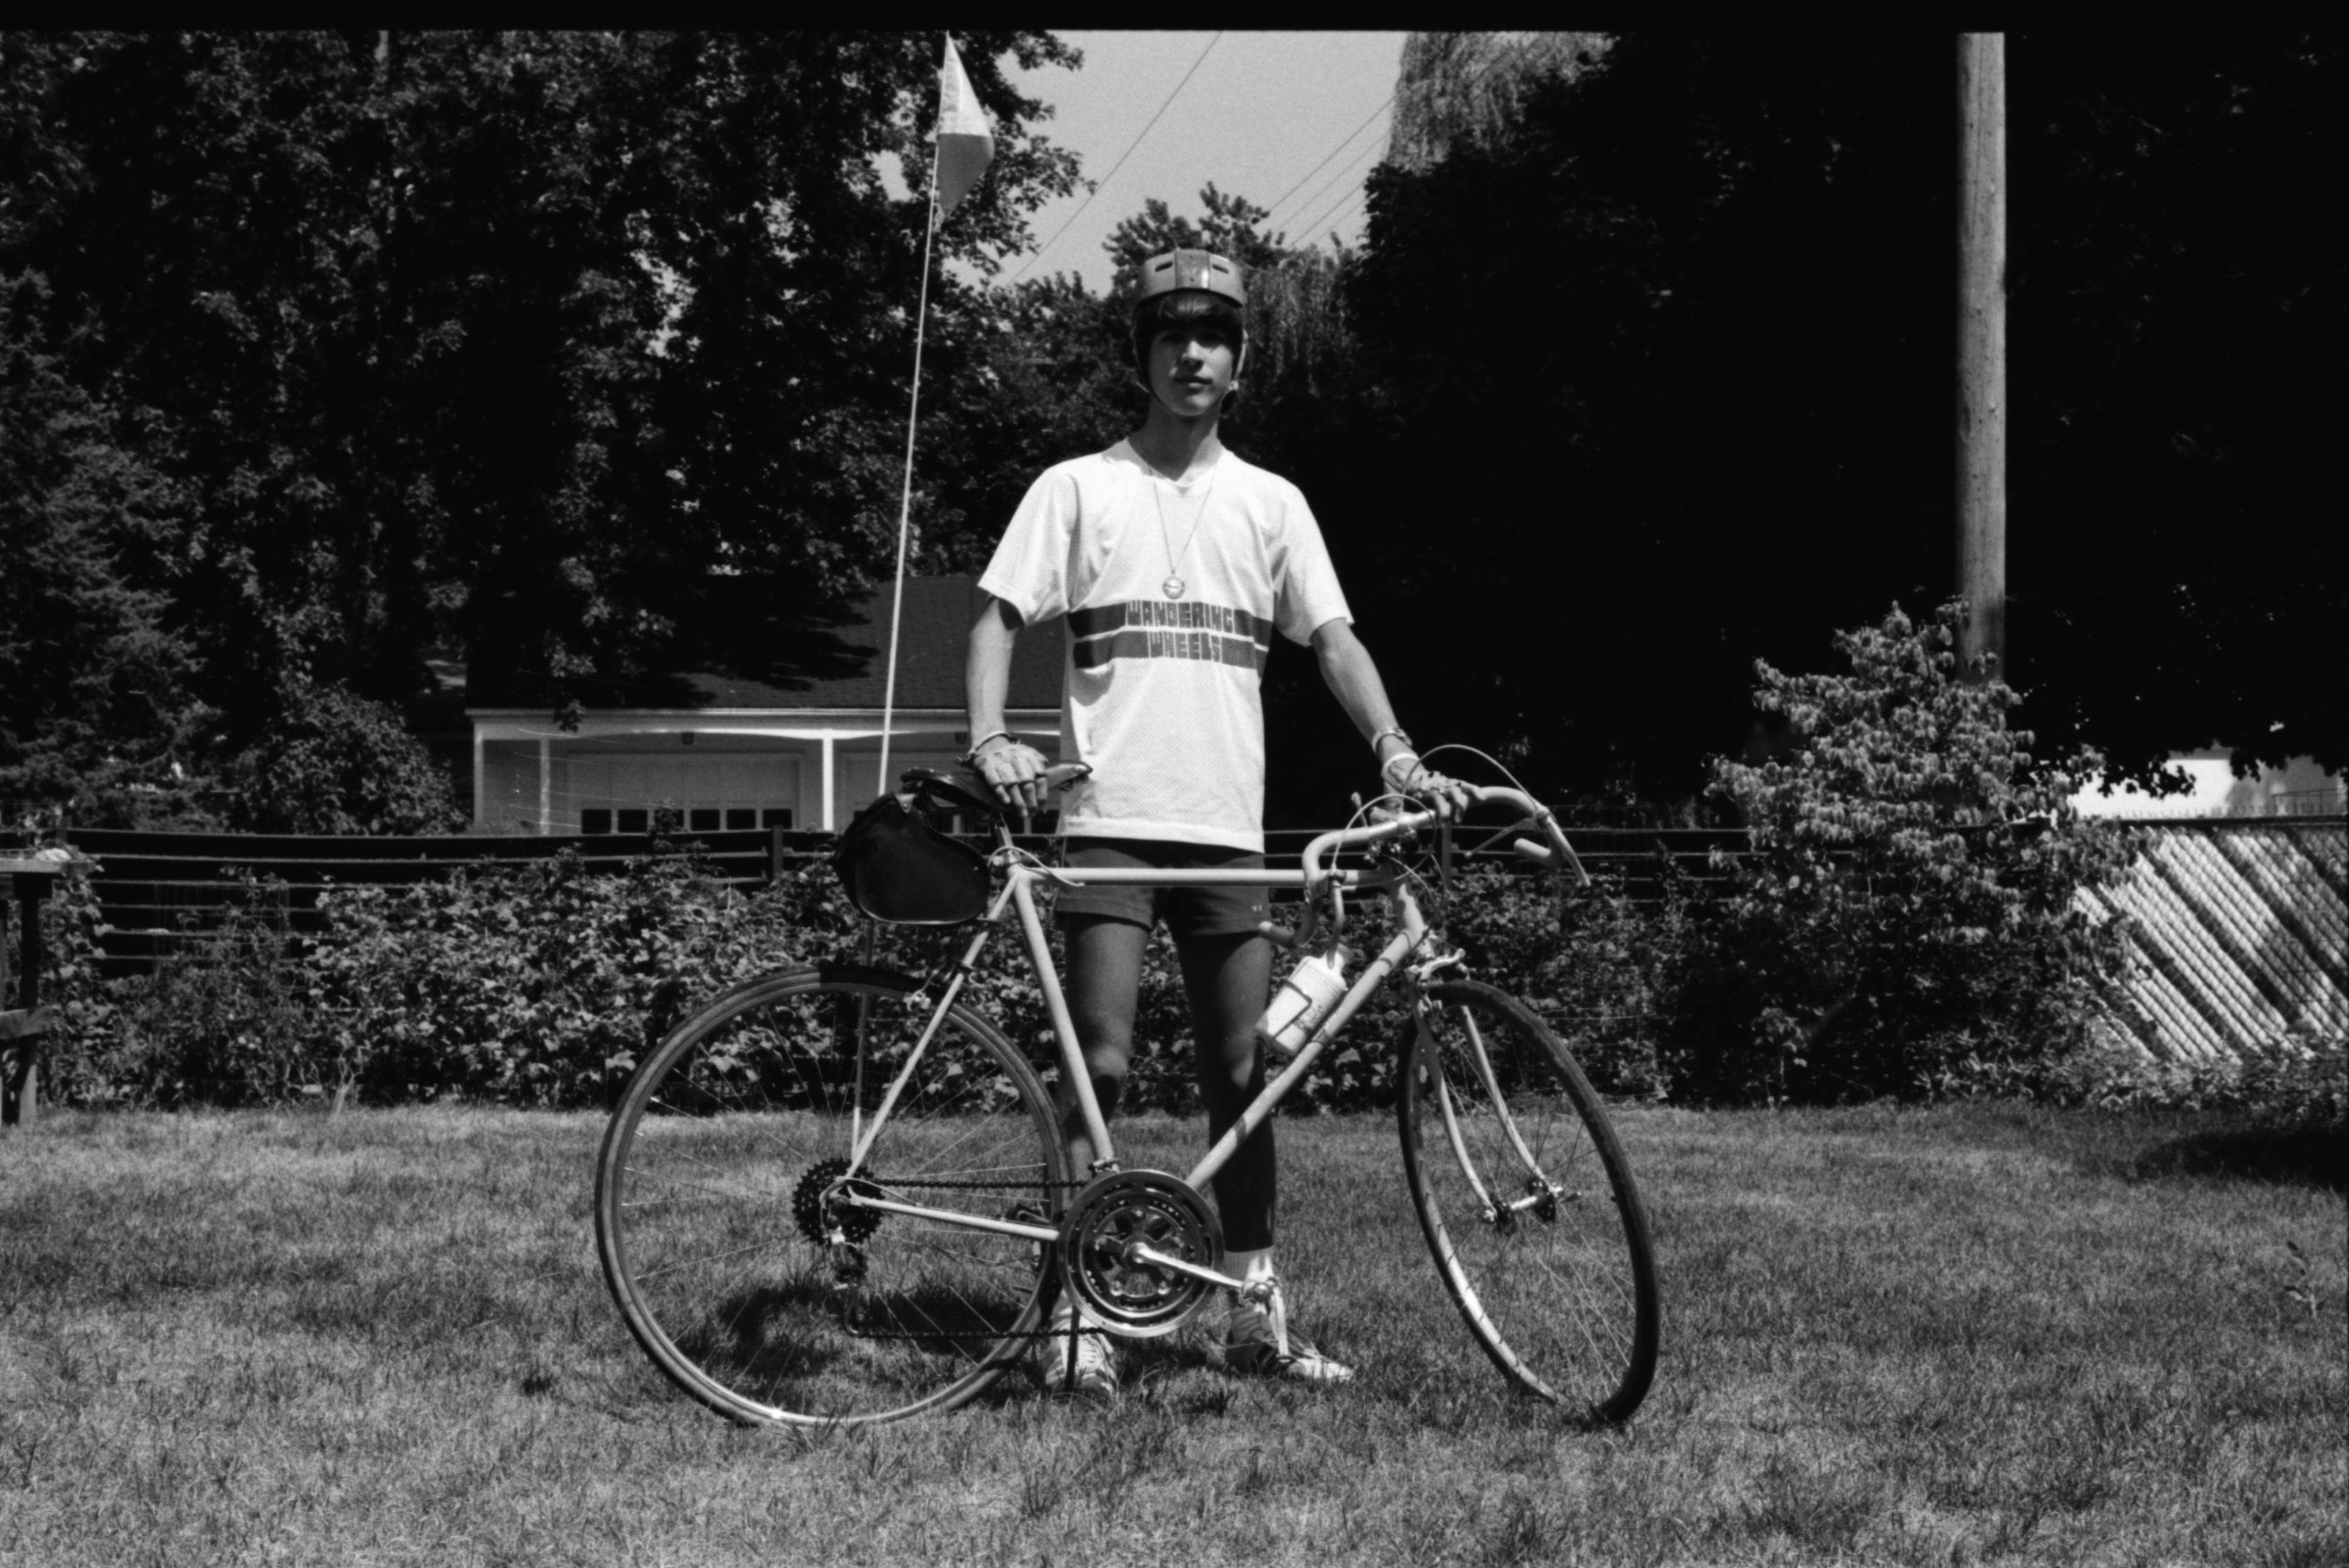 David Carter of Wandering Wheels Bicycle Club, August 1974 image